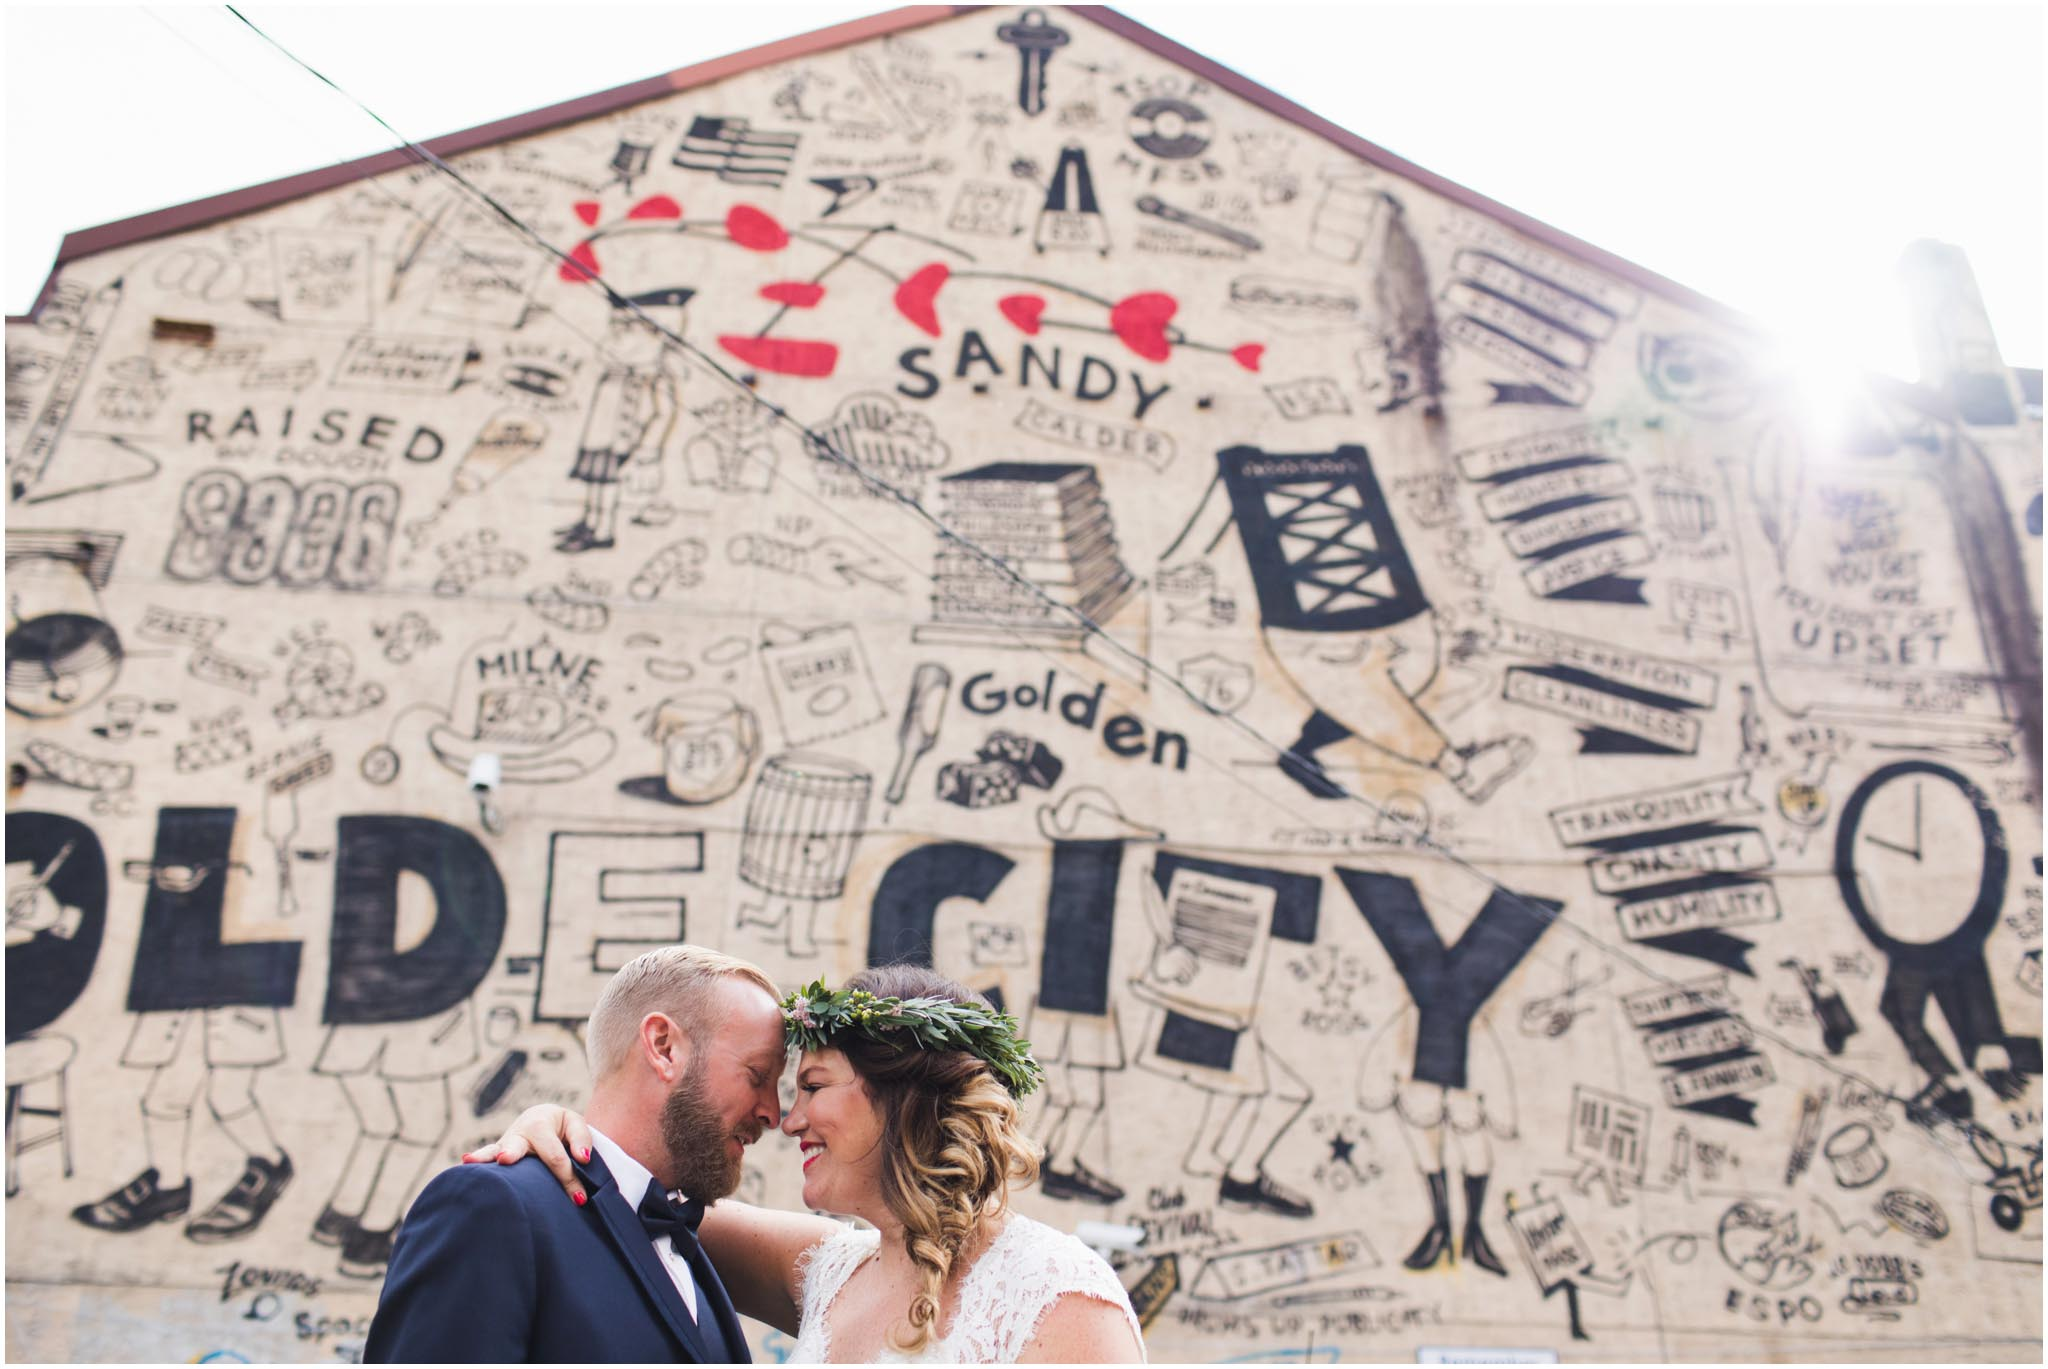 Olde City Tattoo, mural, Steve Powers, wedding